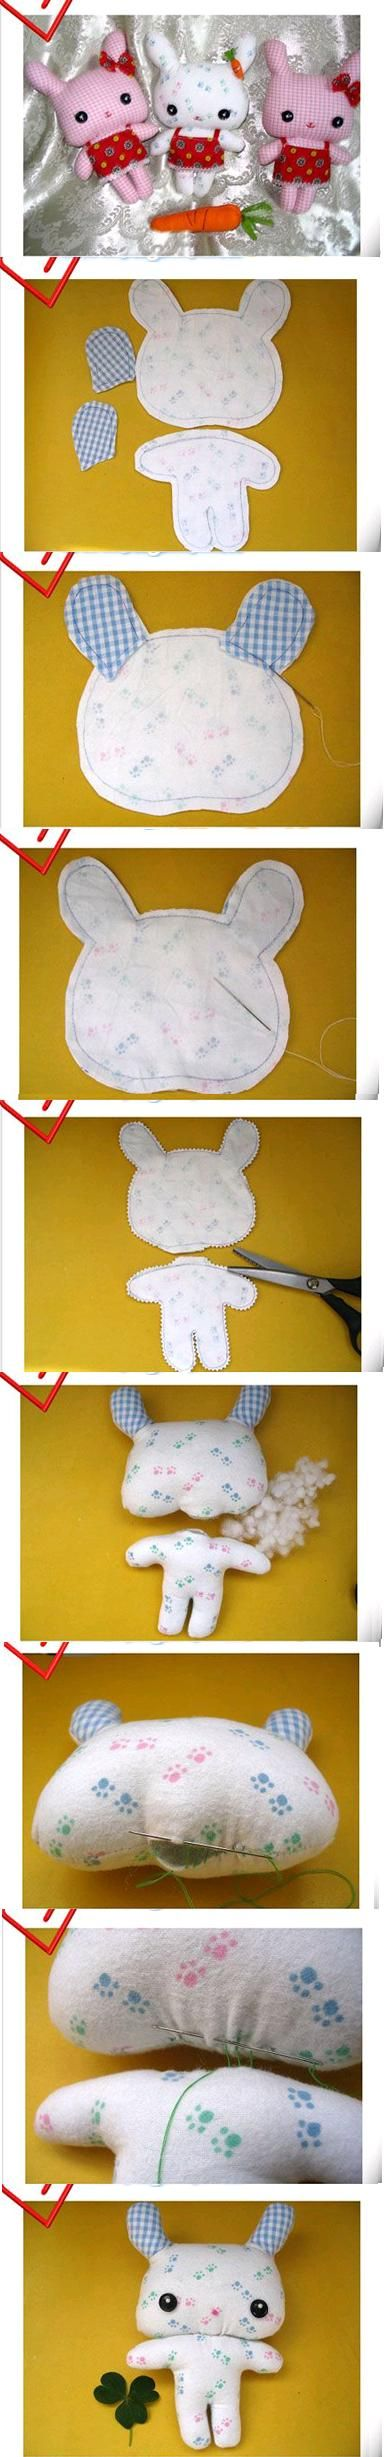 DIY Cute Fabric Bunny